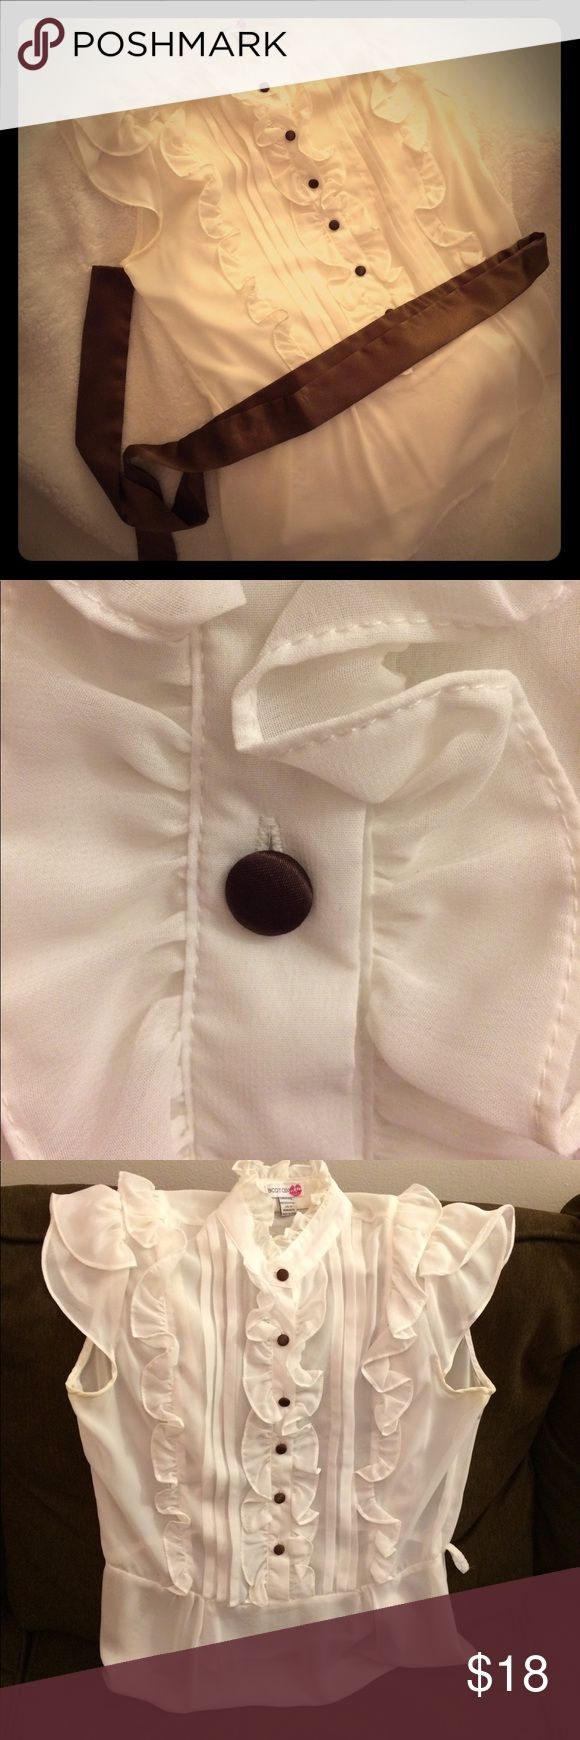 Sheer White Blouse with Silky Brown Sash Vintage appeal! Perfect with a brown pencil skirt or slacks. Buttons covered with sash material. Slight coloration under cap sleeves (picture). Body Central Tops Blouses